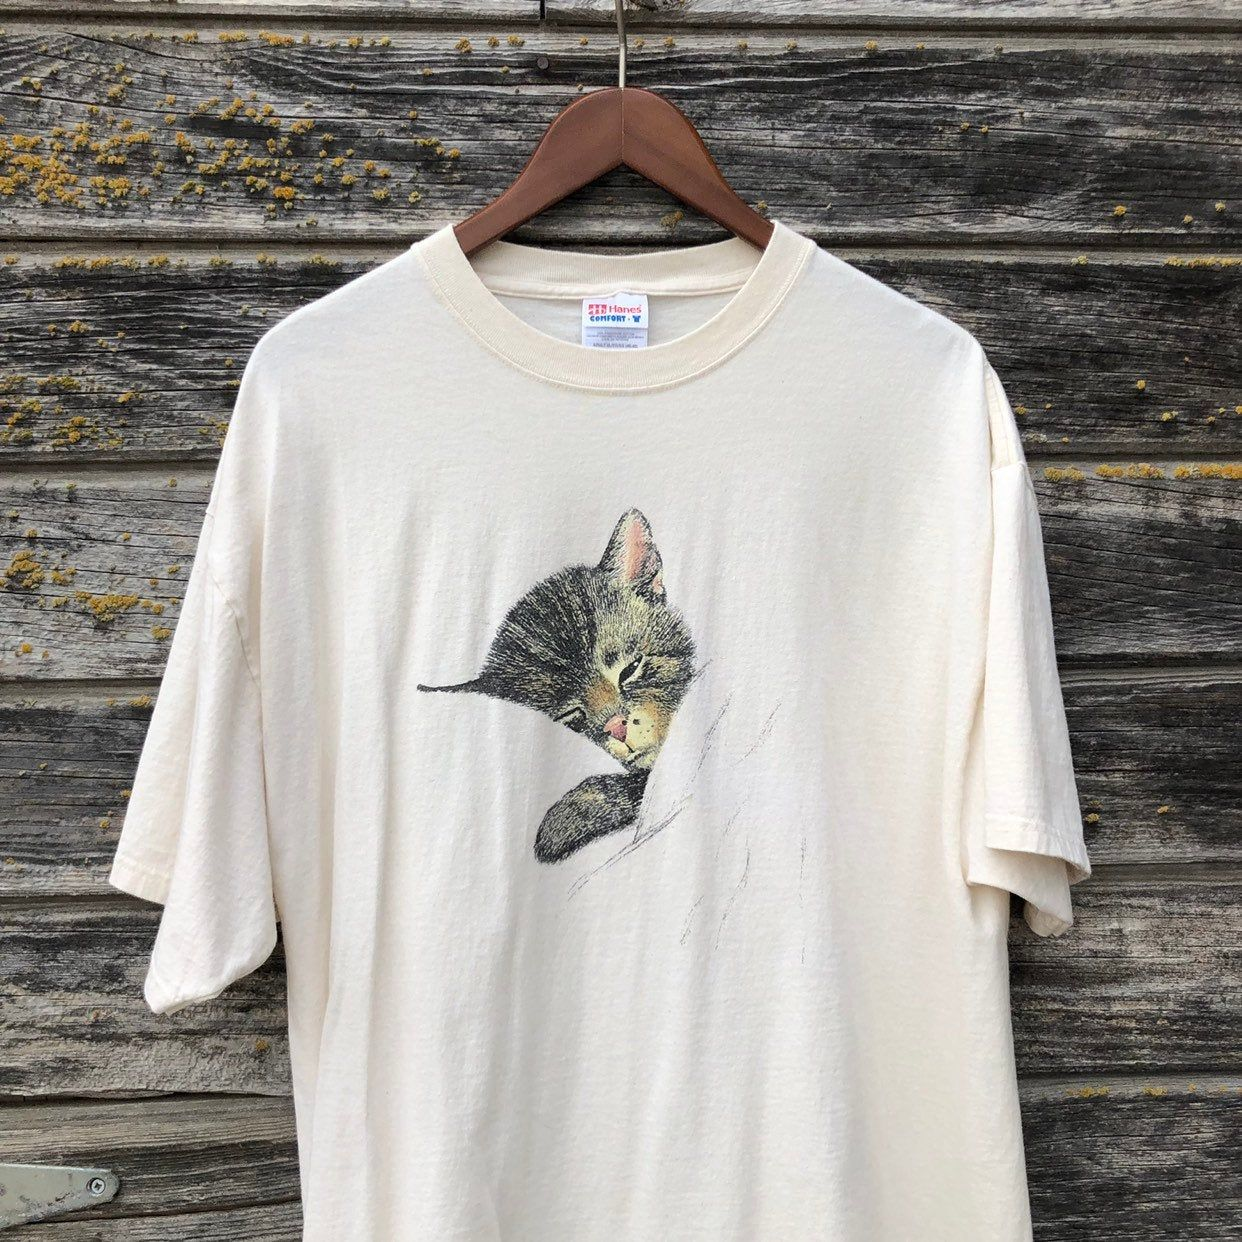 Vintage Kitten T Shirt Sleepy Cat Nap Asleep Graphic Tee Pastel Cream Beige Brown Black Tabby Kitty Sleeping Vintage Clothing For Sale Vintage Outfits Cat Nap